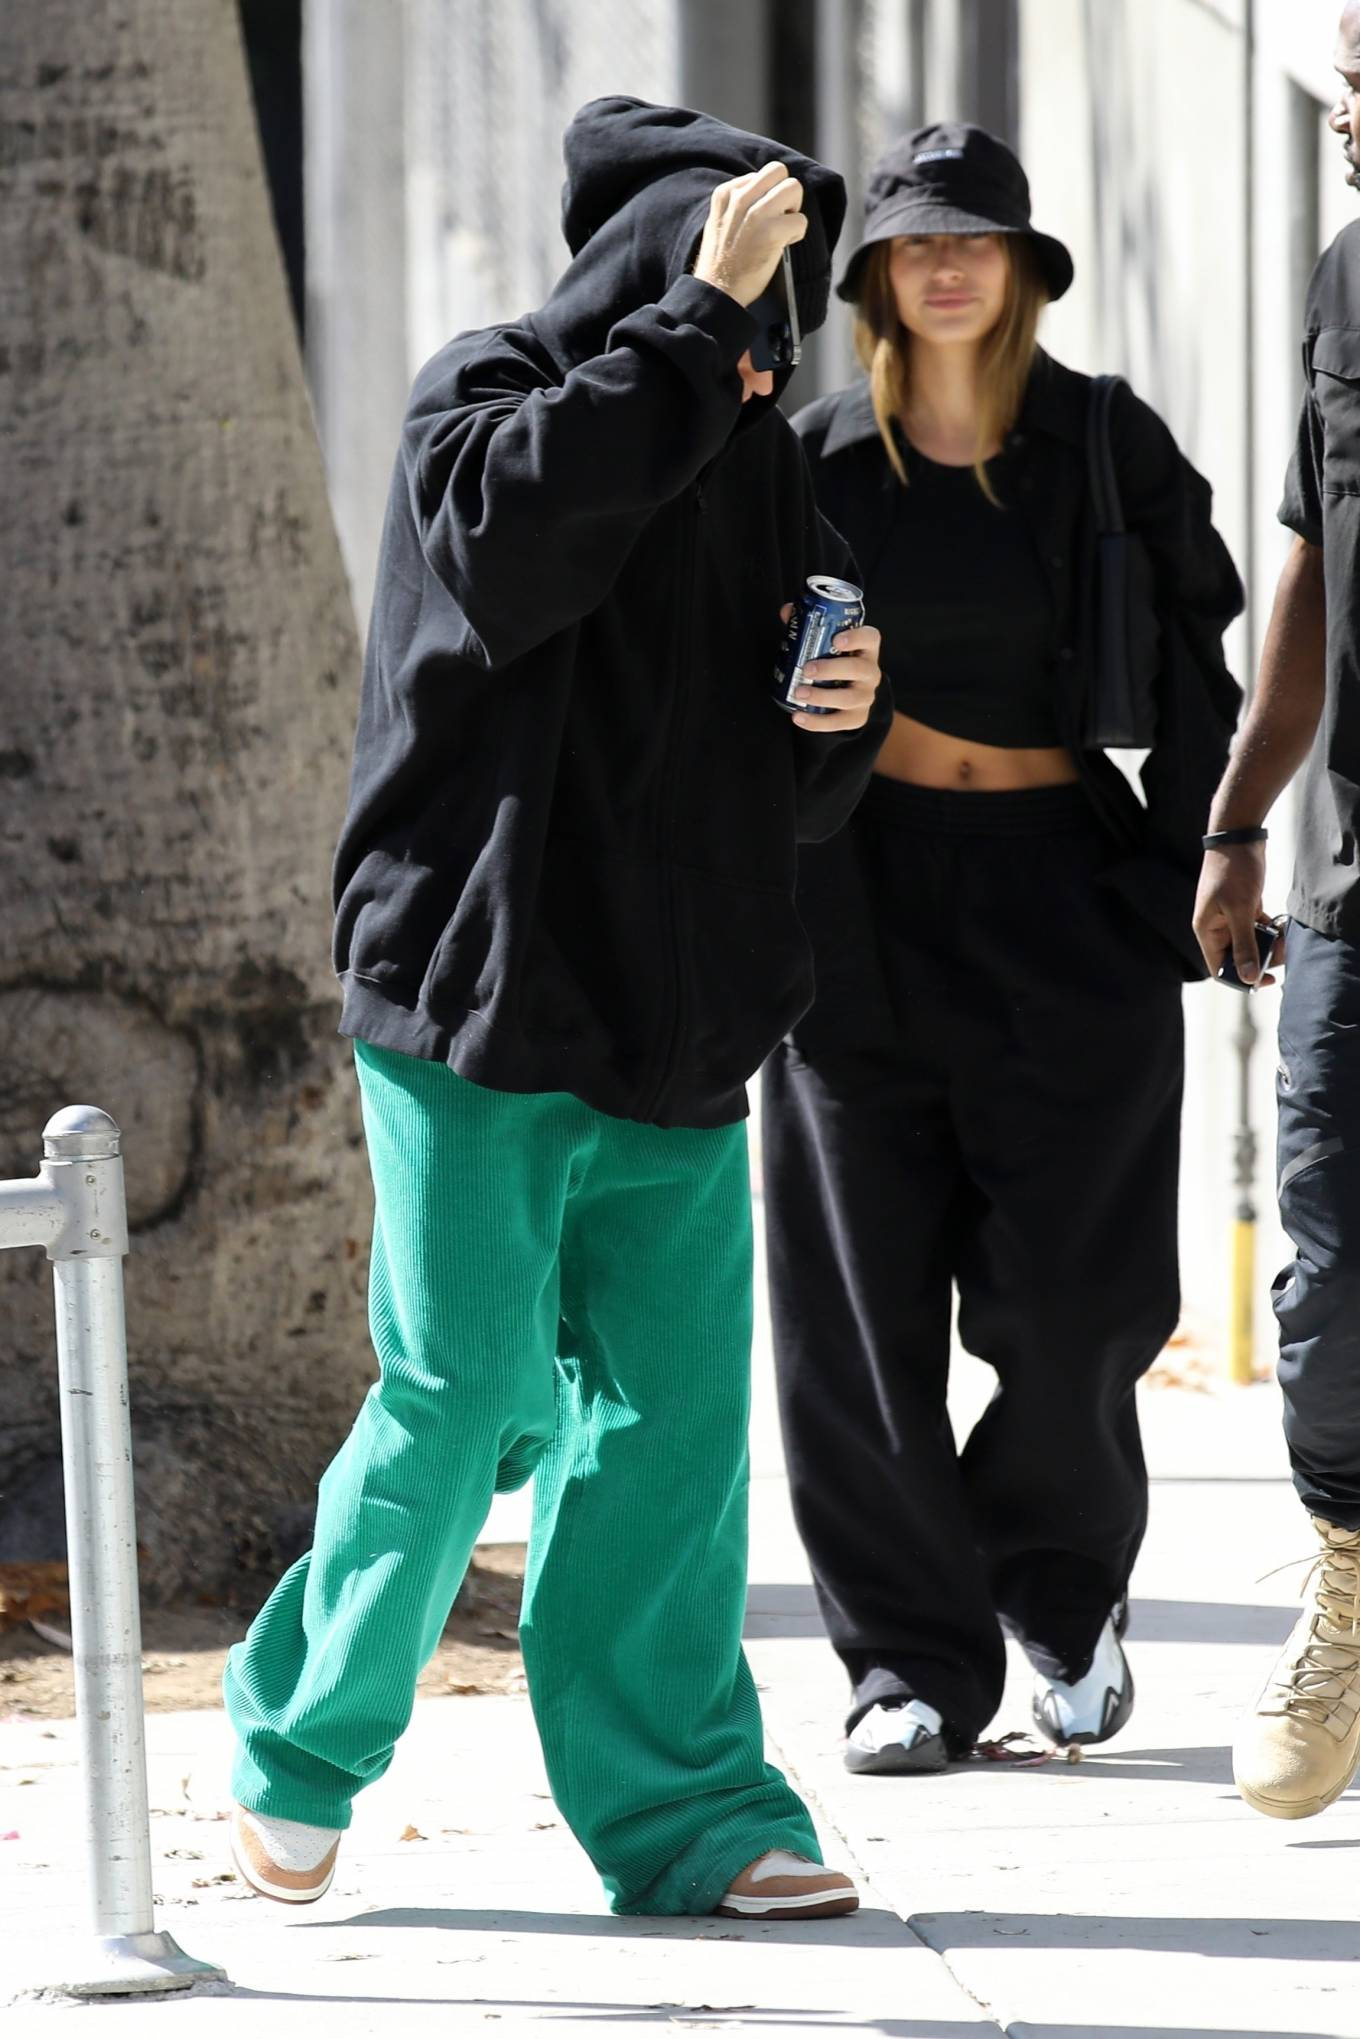 Hailey Bieber rocking a black cotton crop top that make the most her midriff while out and about in Los Angeles